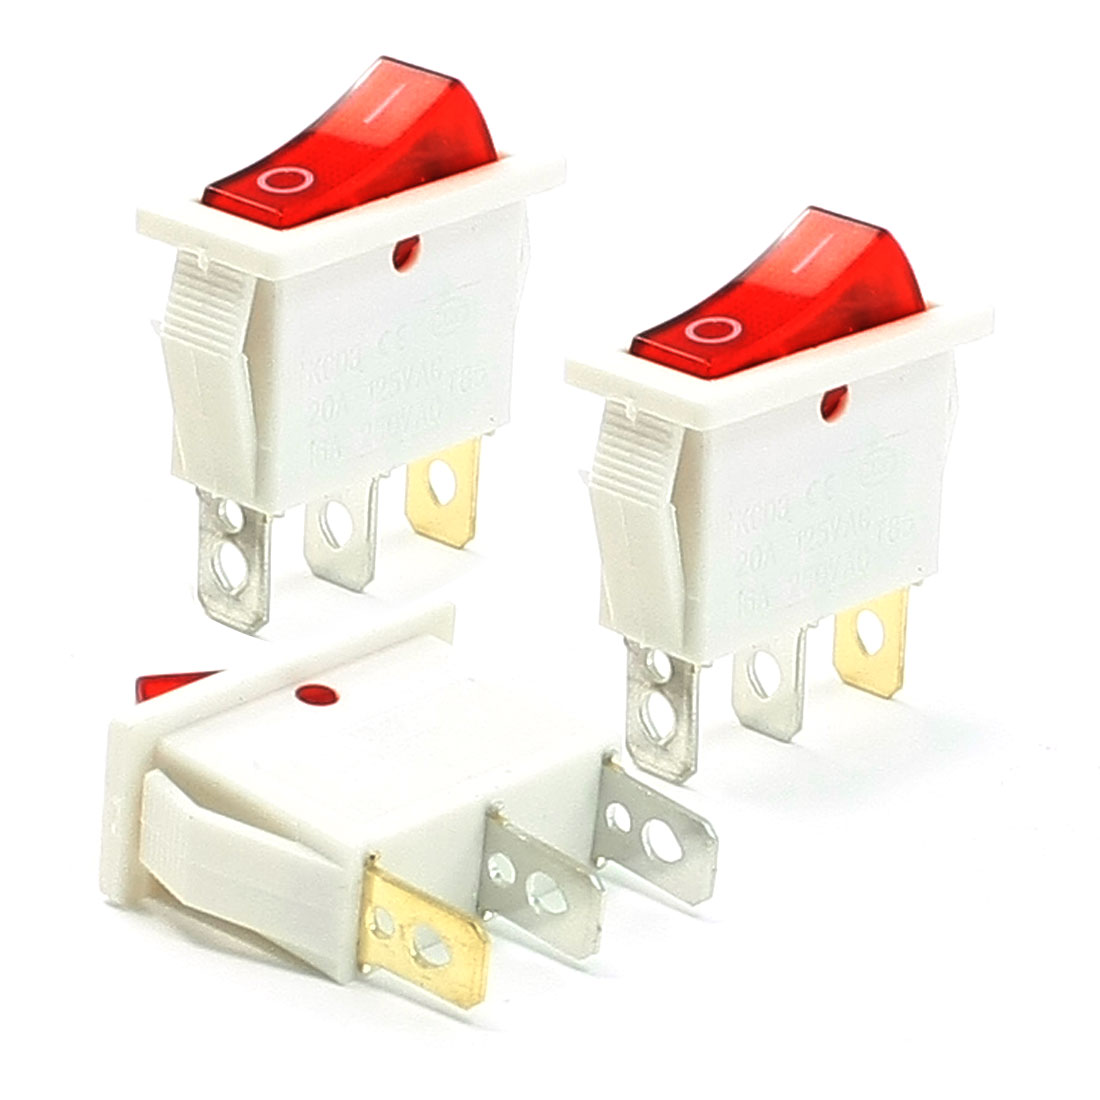 16A 250VAC 20A 125VAC Red Indicator Light I/O 3 Pin SPST Rocker Switch 3 Pcs